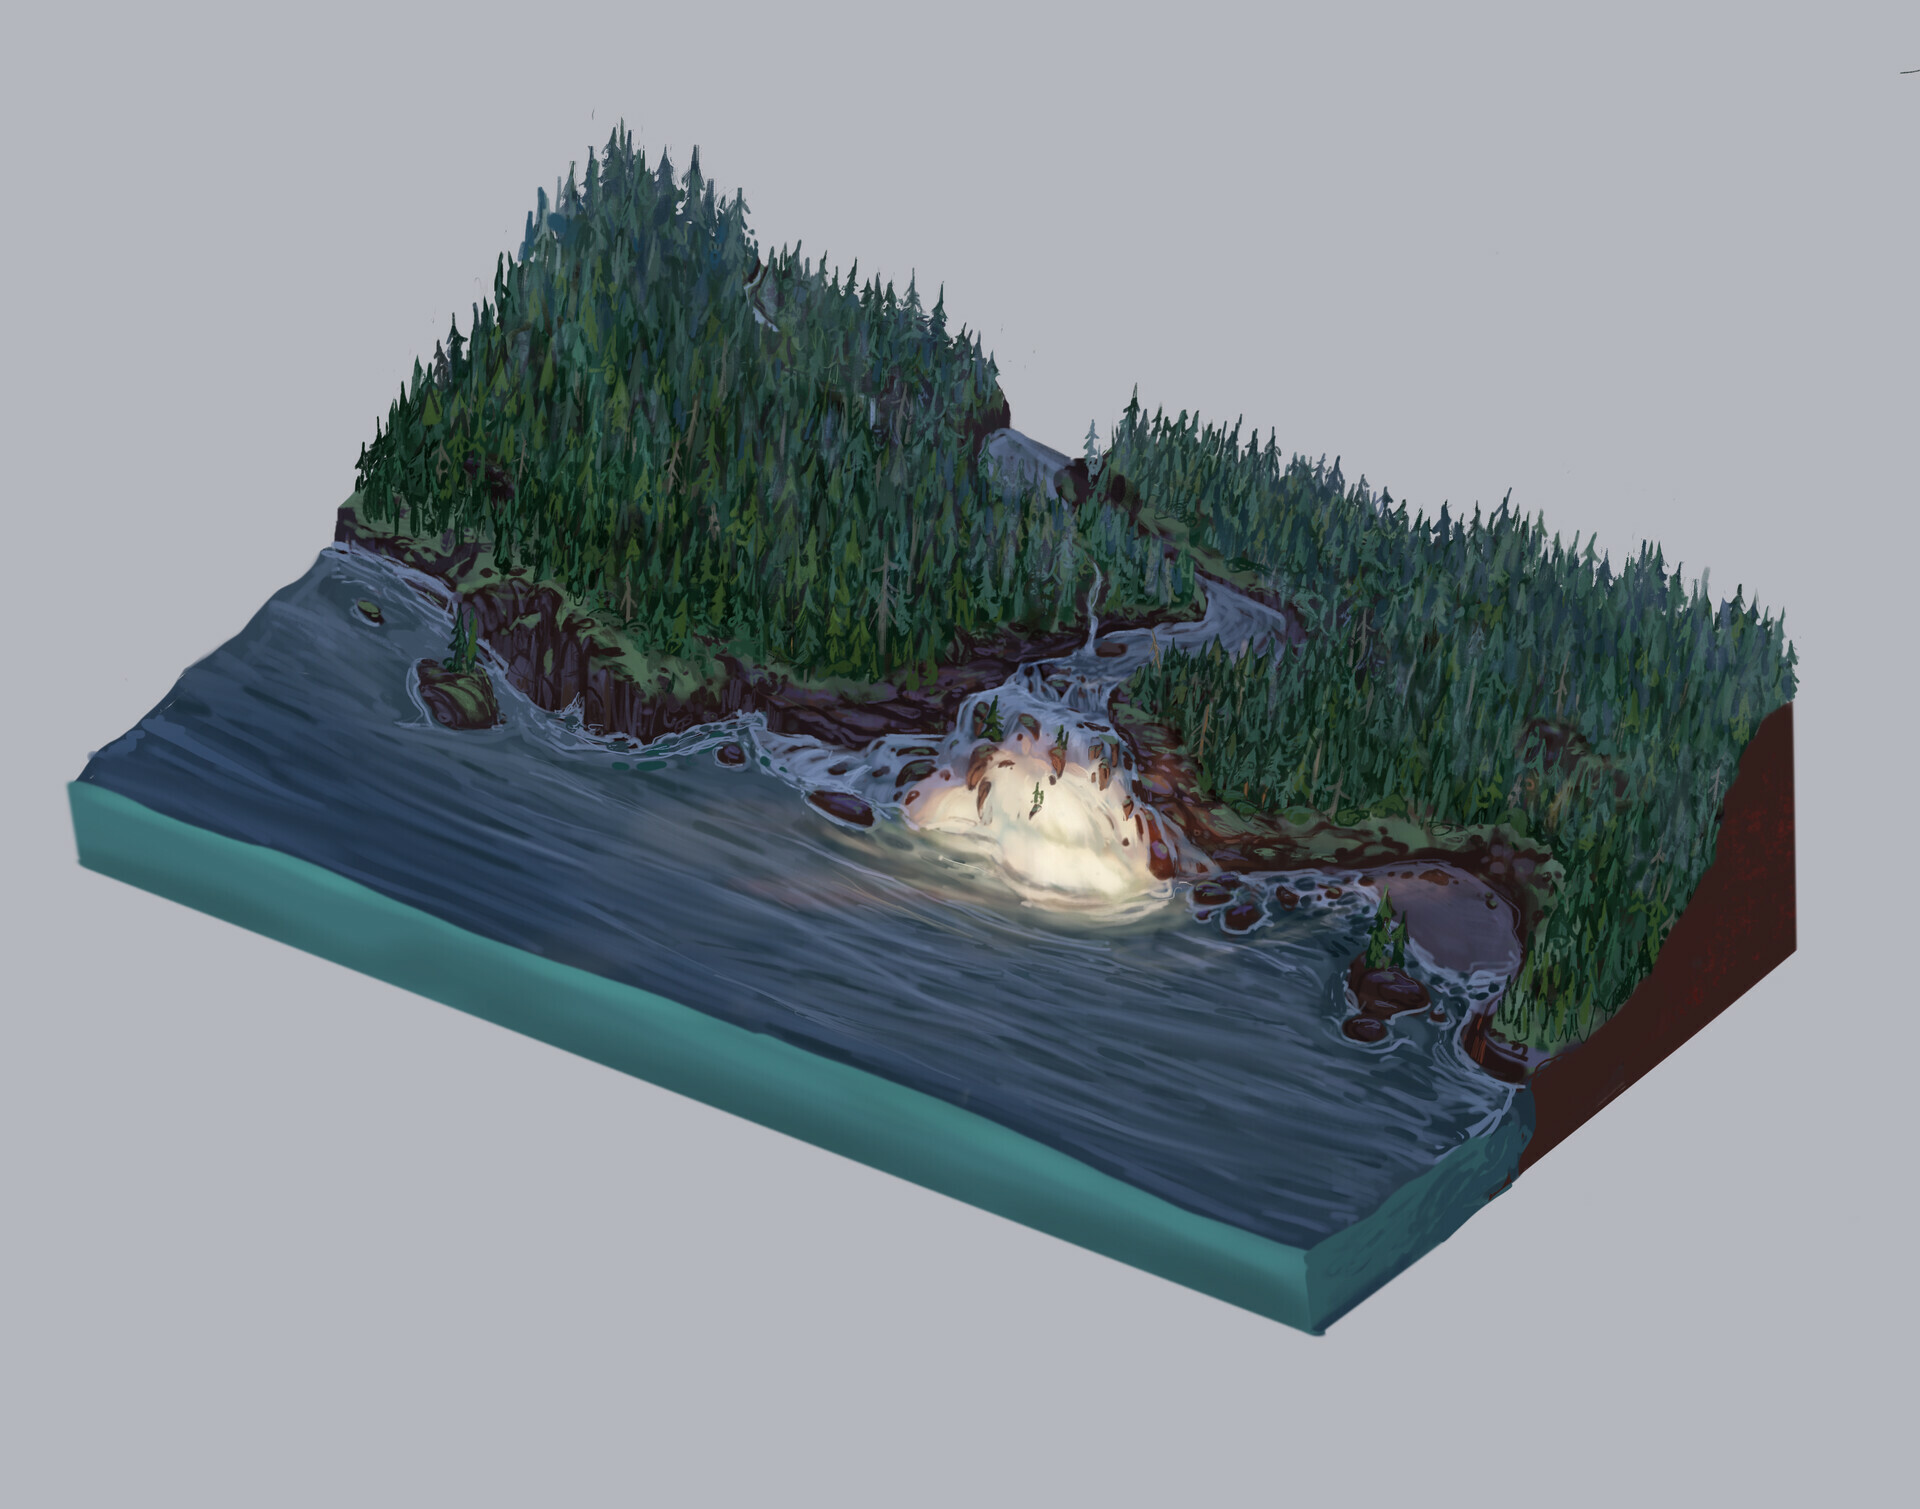 Top down view of the environment for the scene.